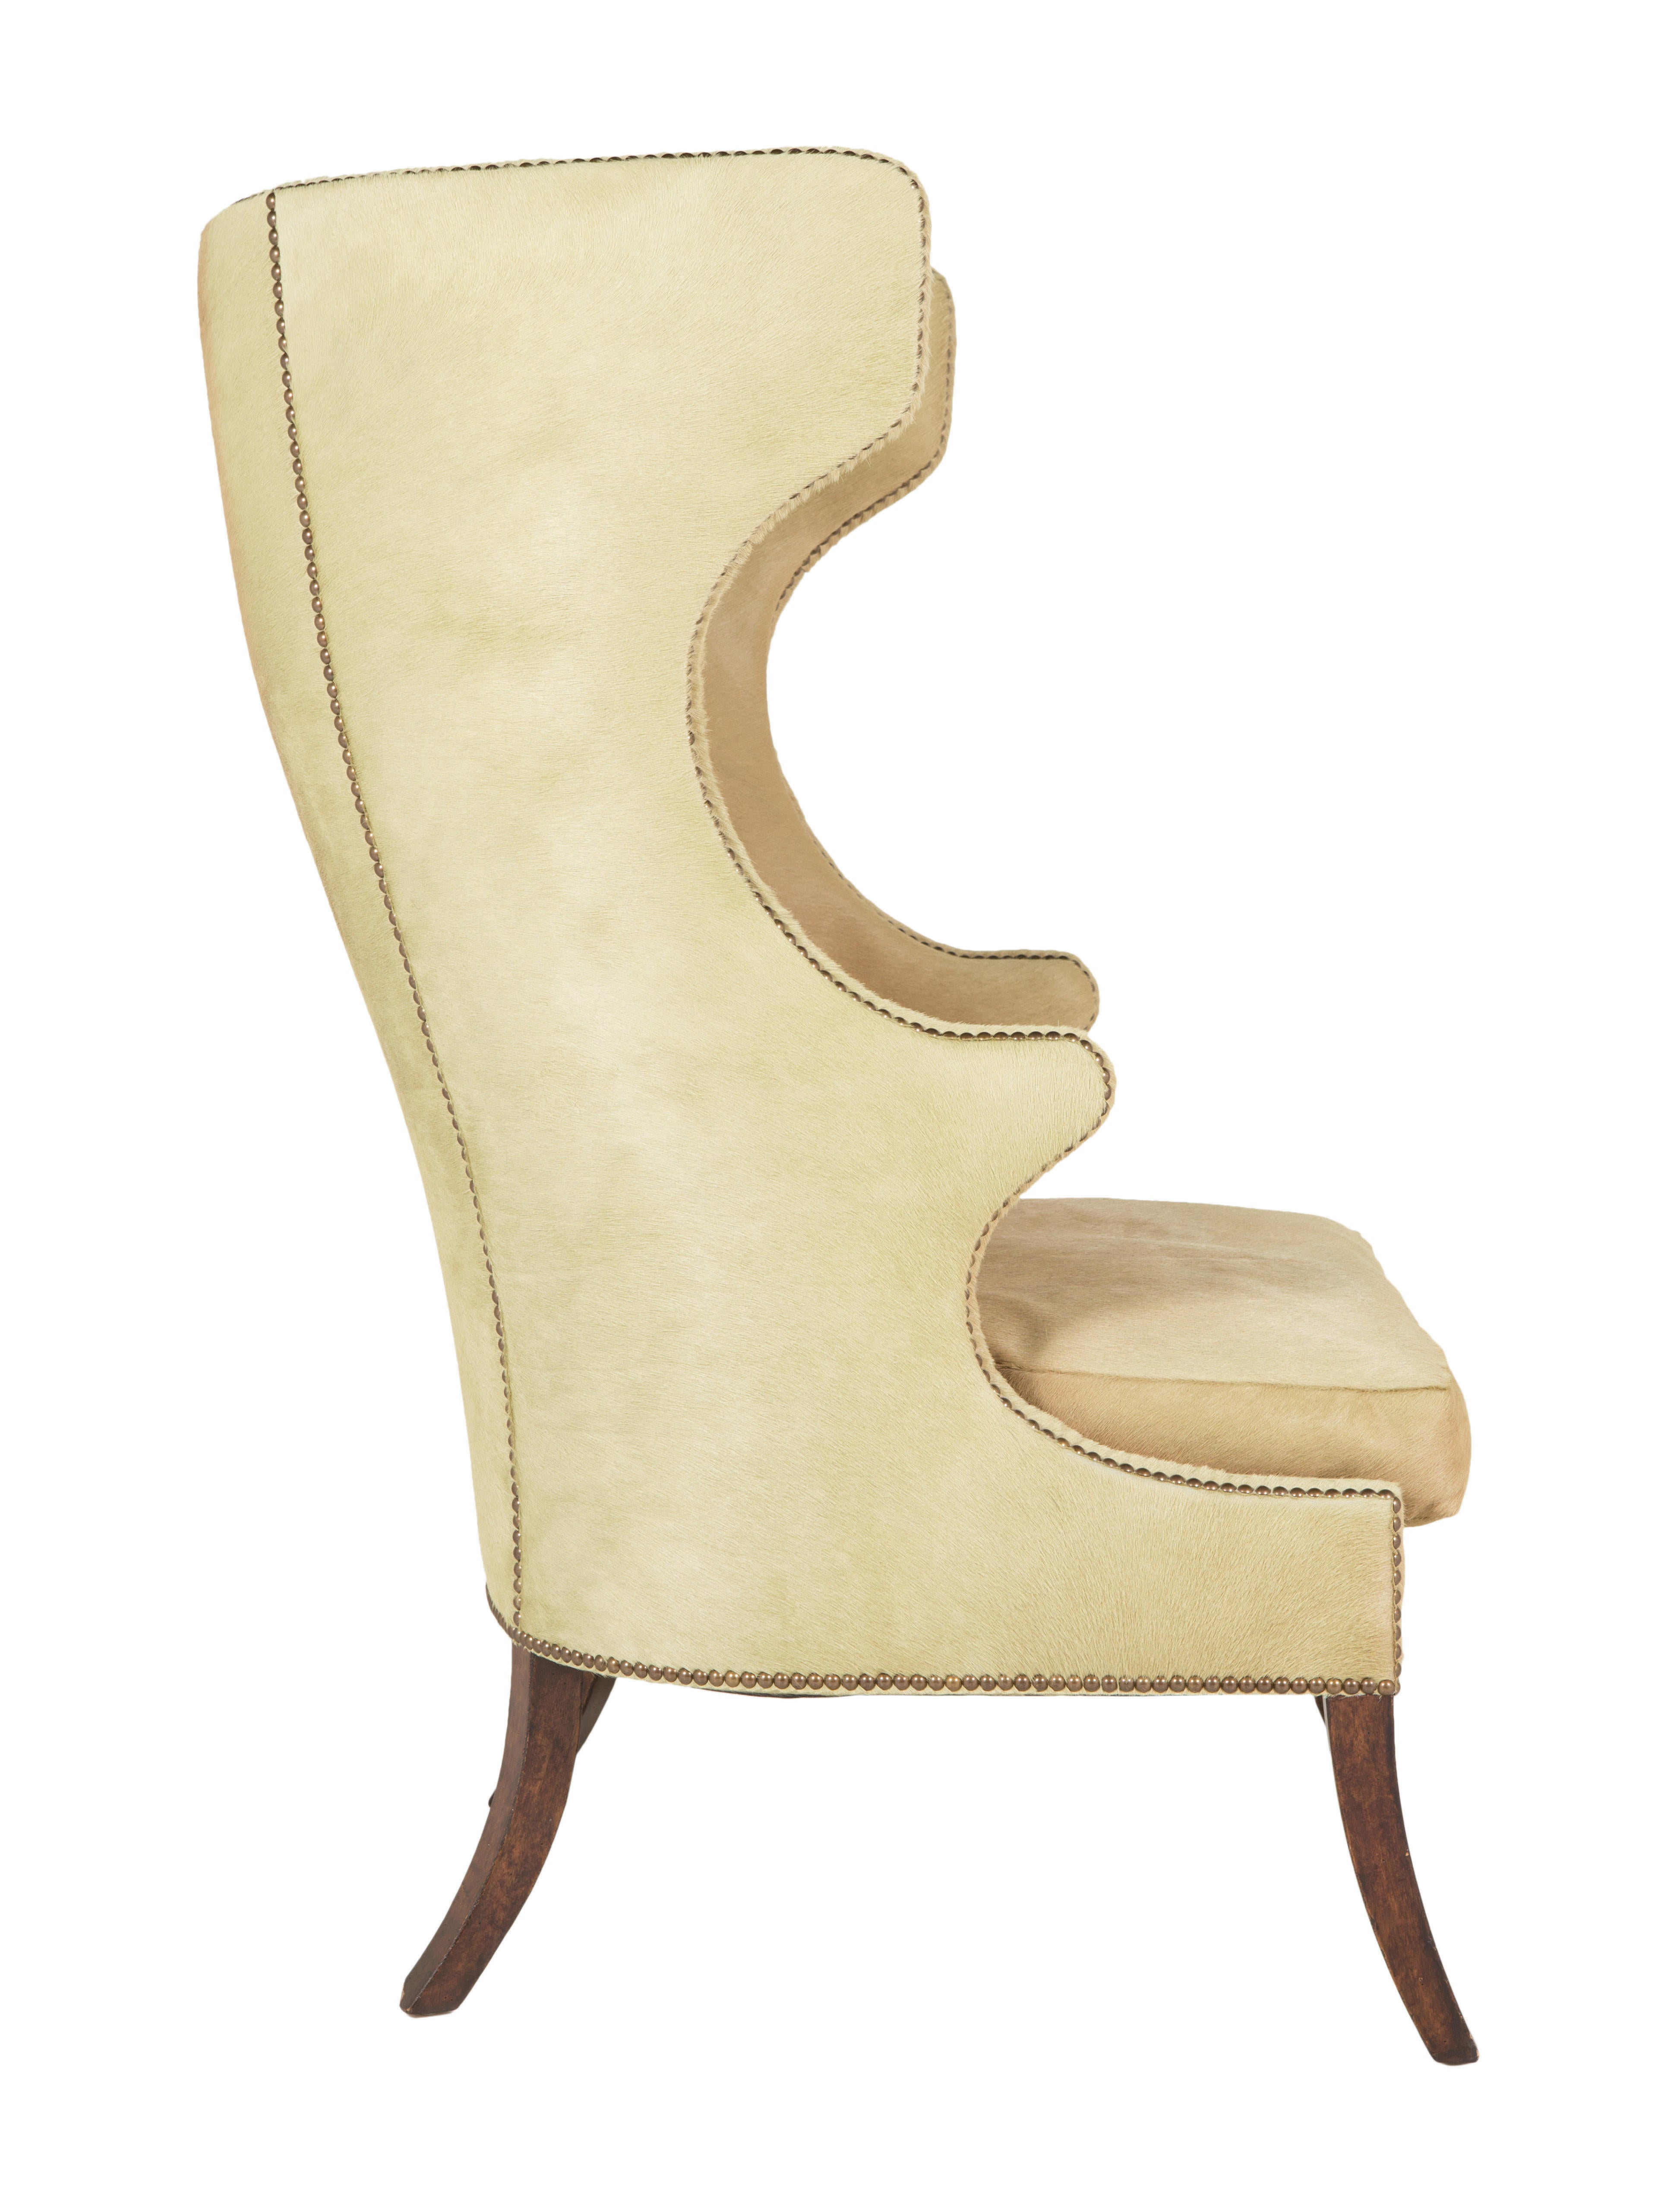 Dennis & Leen Cowhide Accent Chair Furniture CHAIR